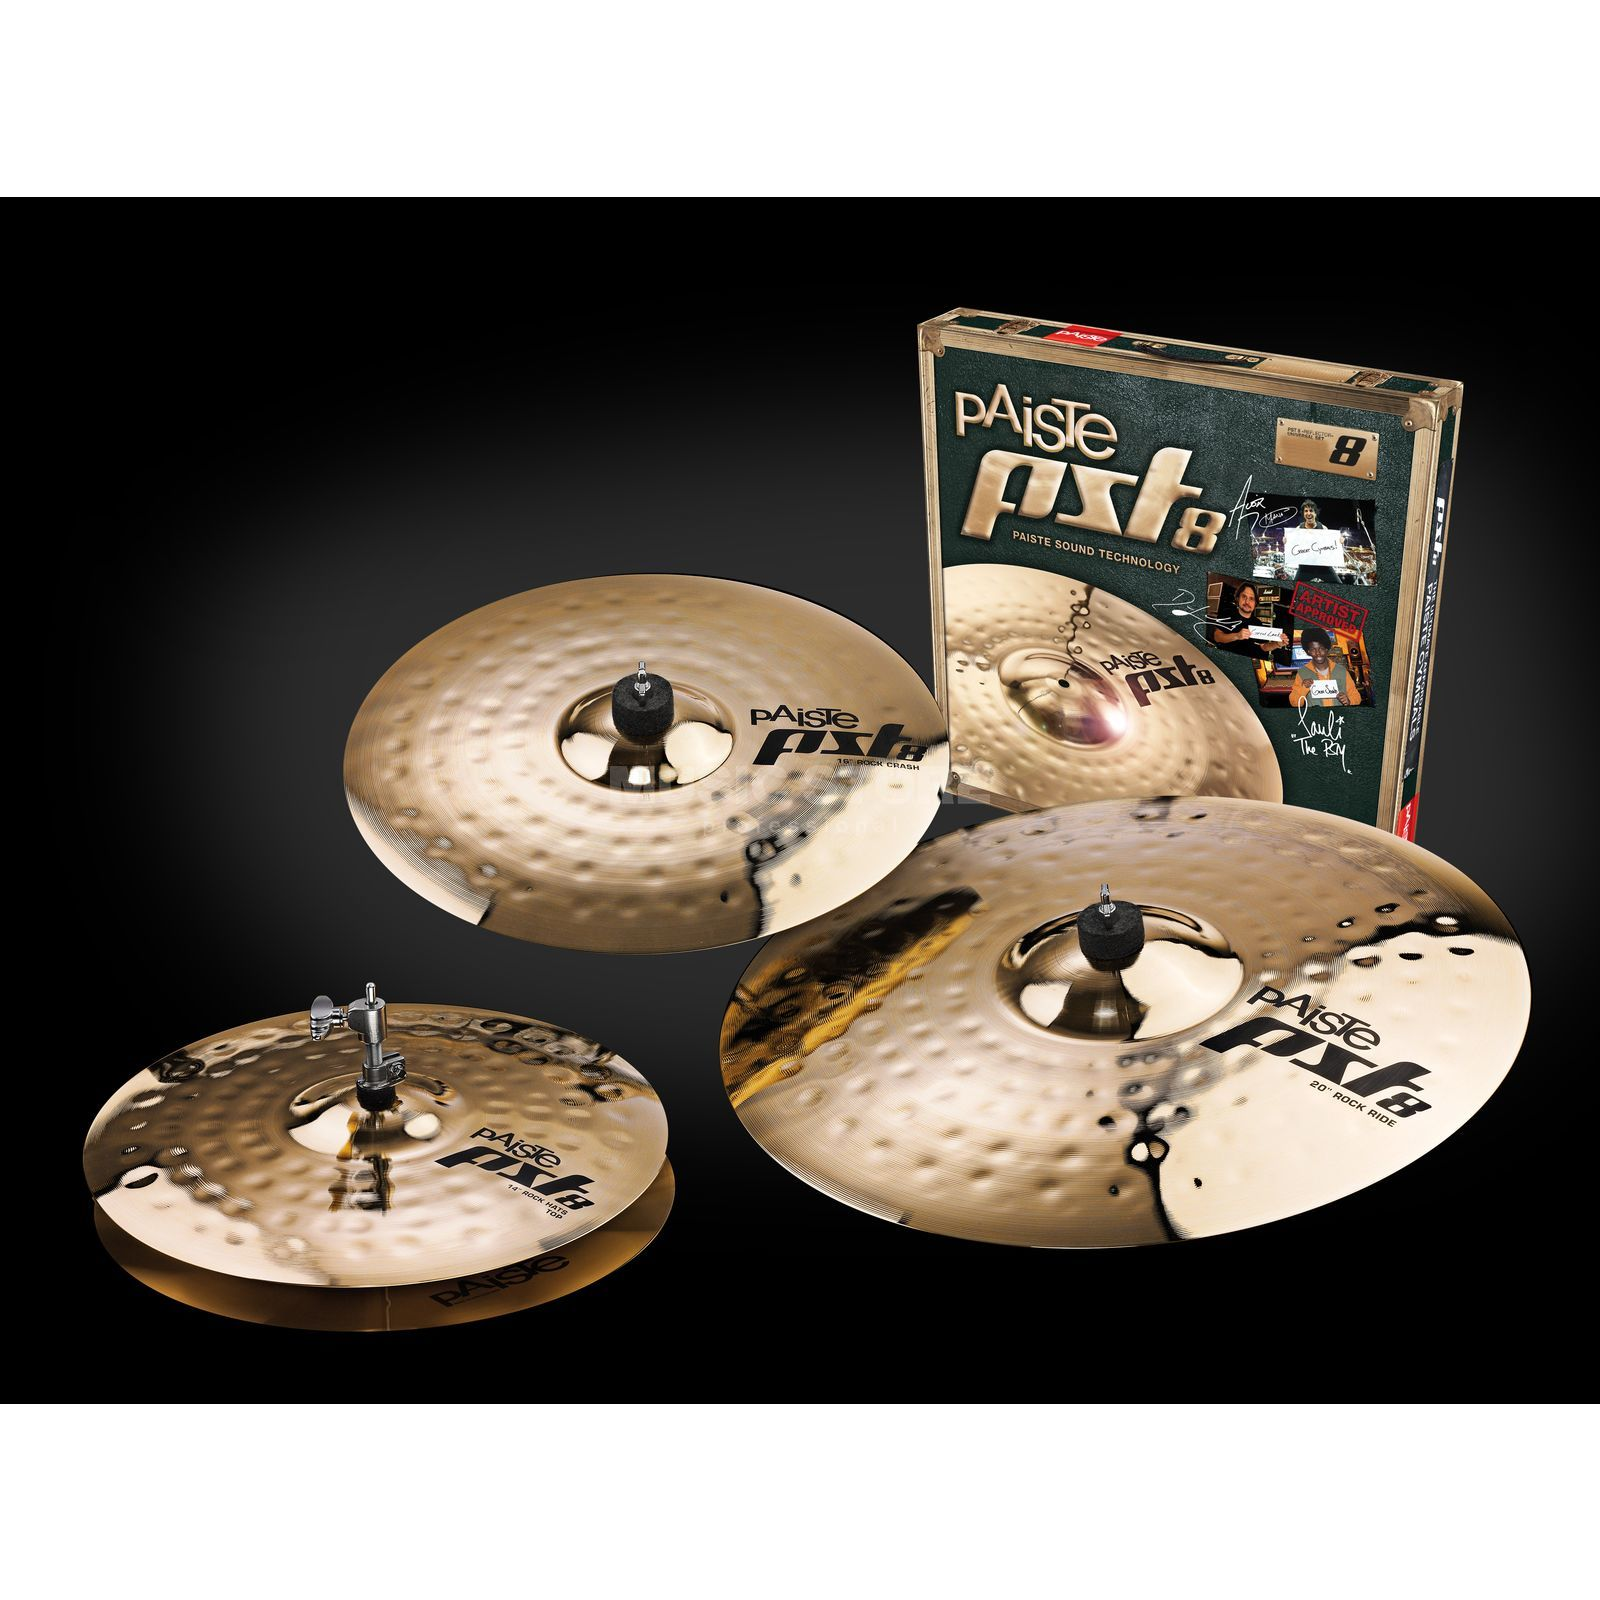 "Paiste PST8 Rock Cymbal Set, 14""HH, 16""CR, 20""R Product Image"